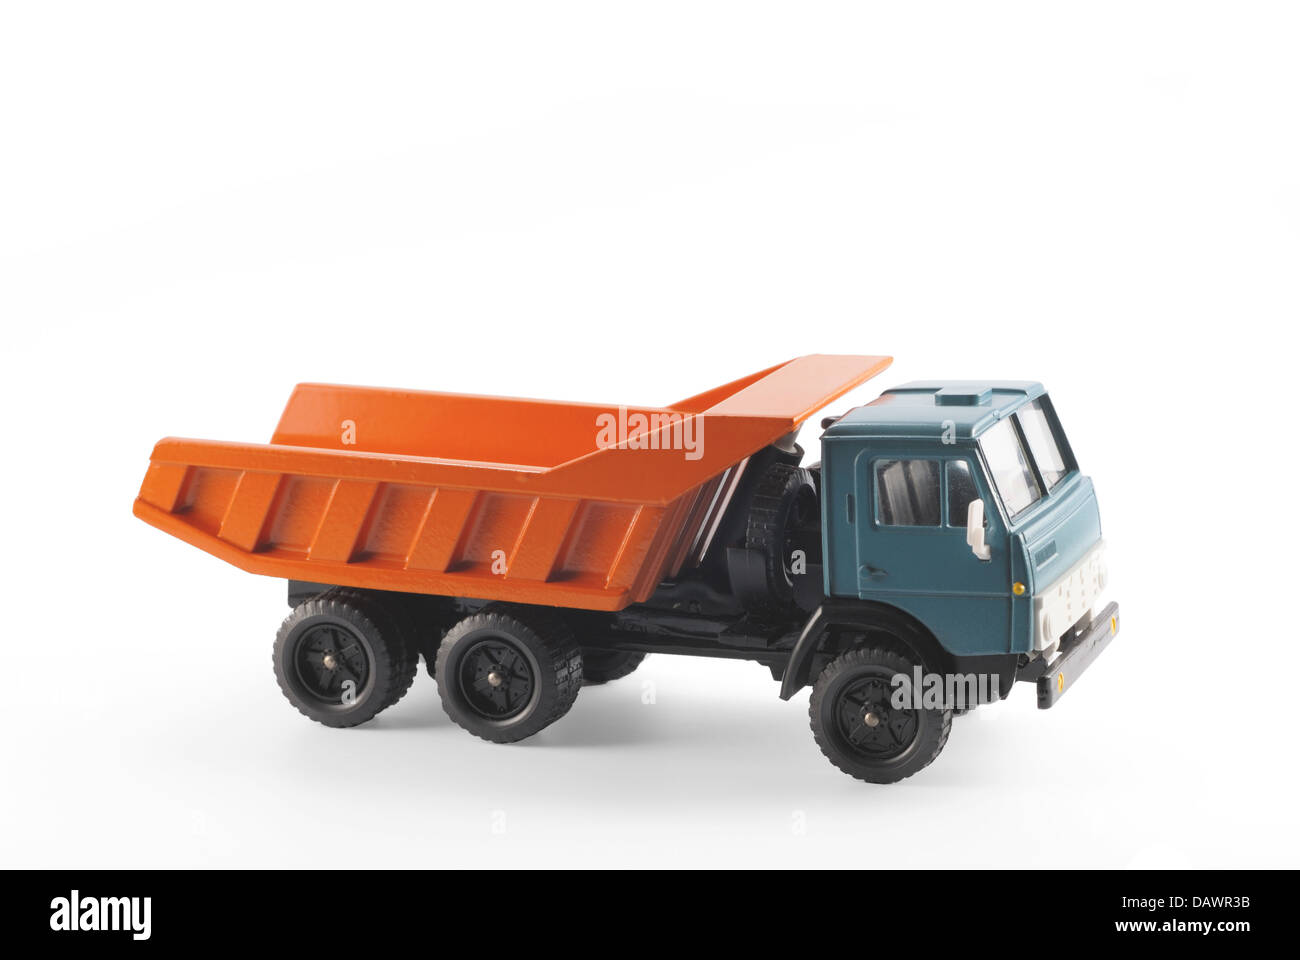 The truck - Stock Image